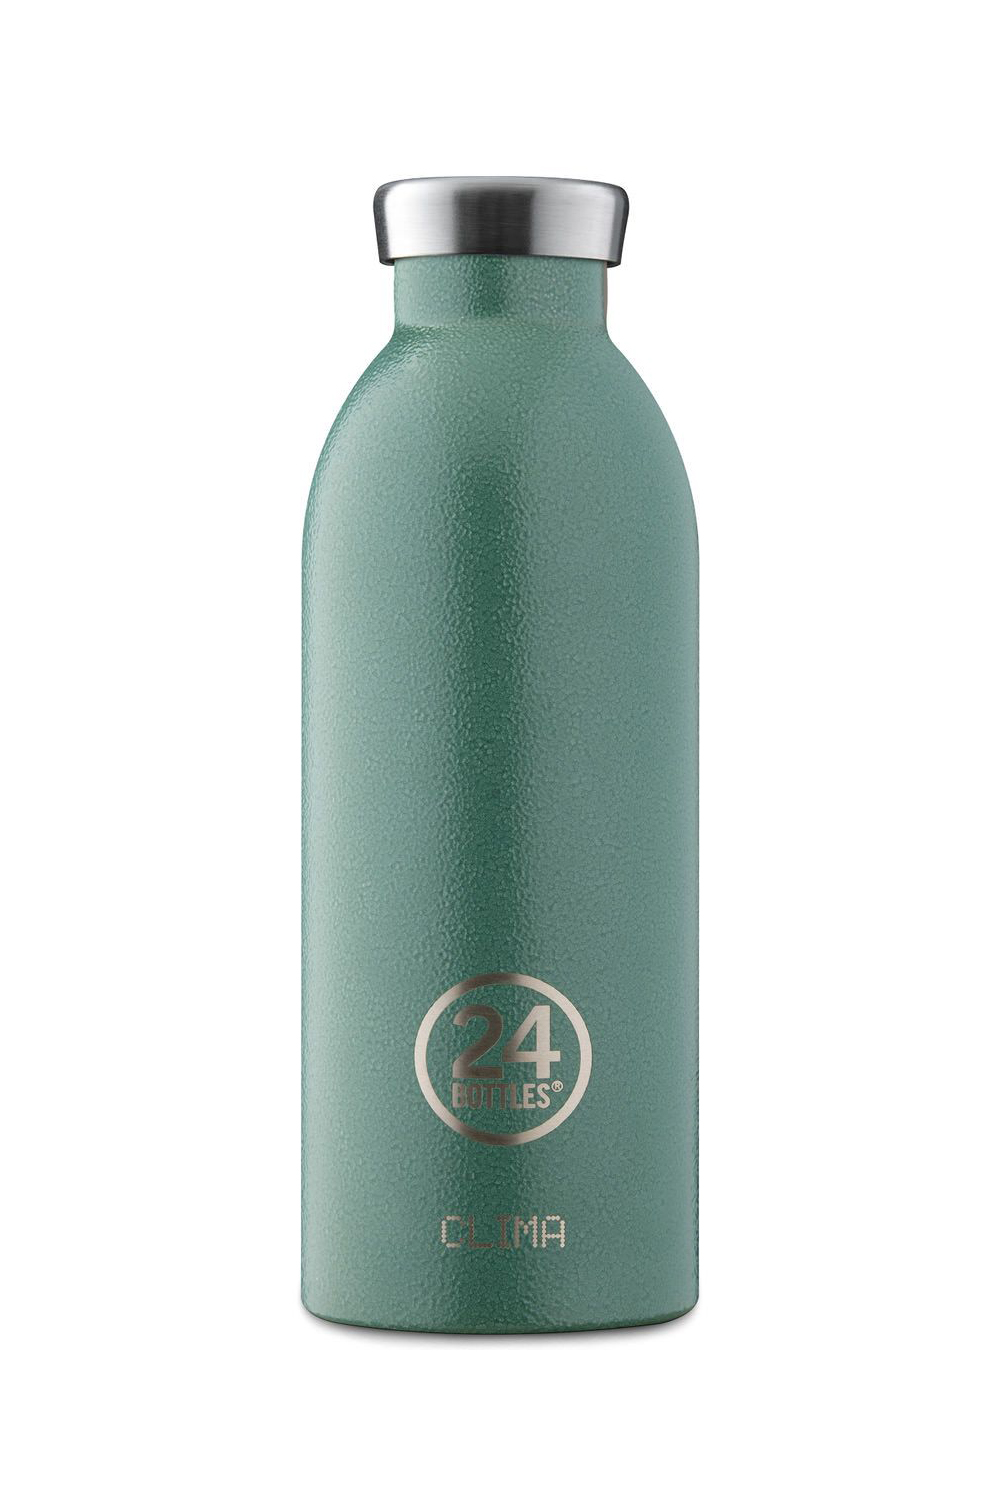 Isolierflasche (24Bottles) moss green 0,85 l